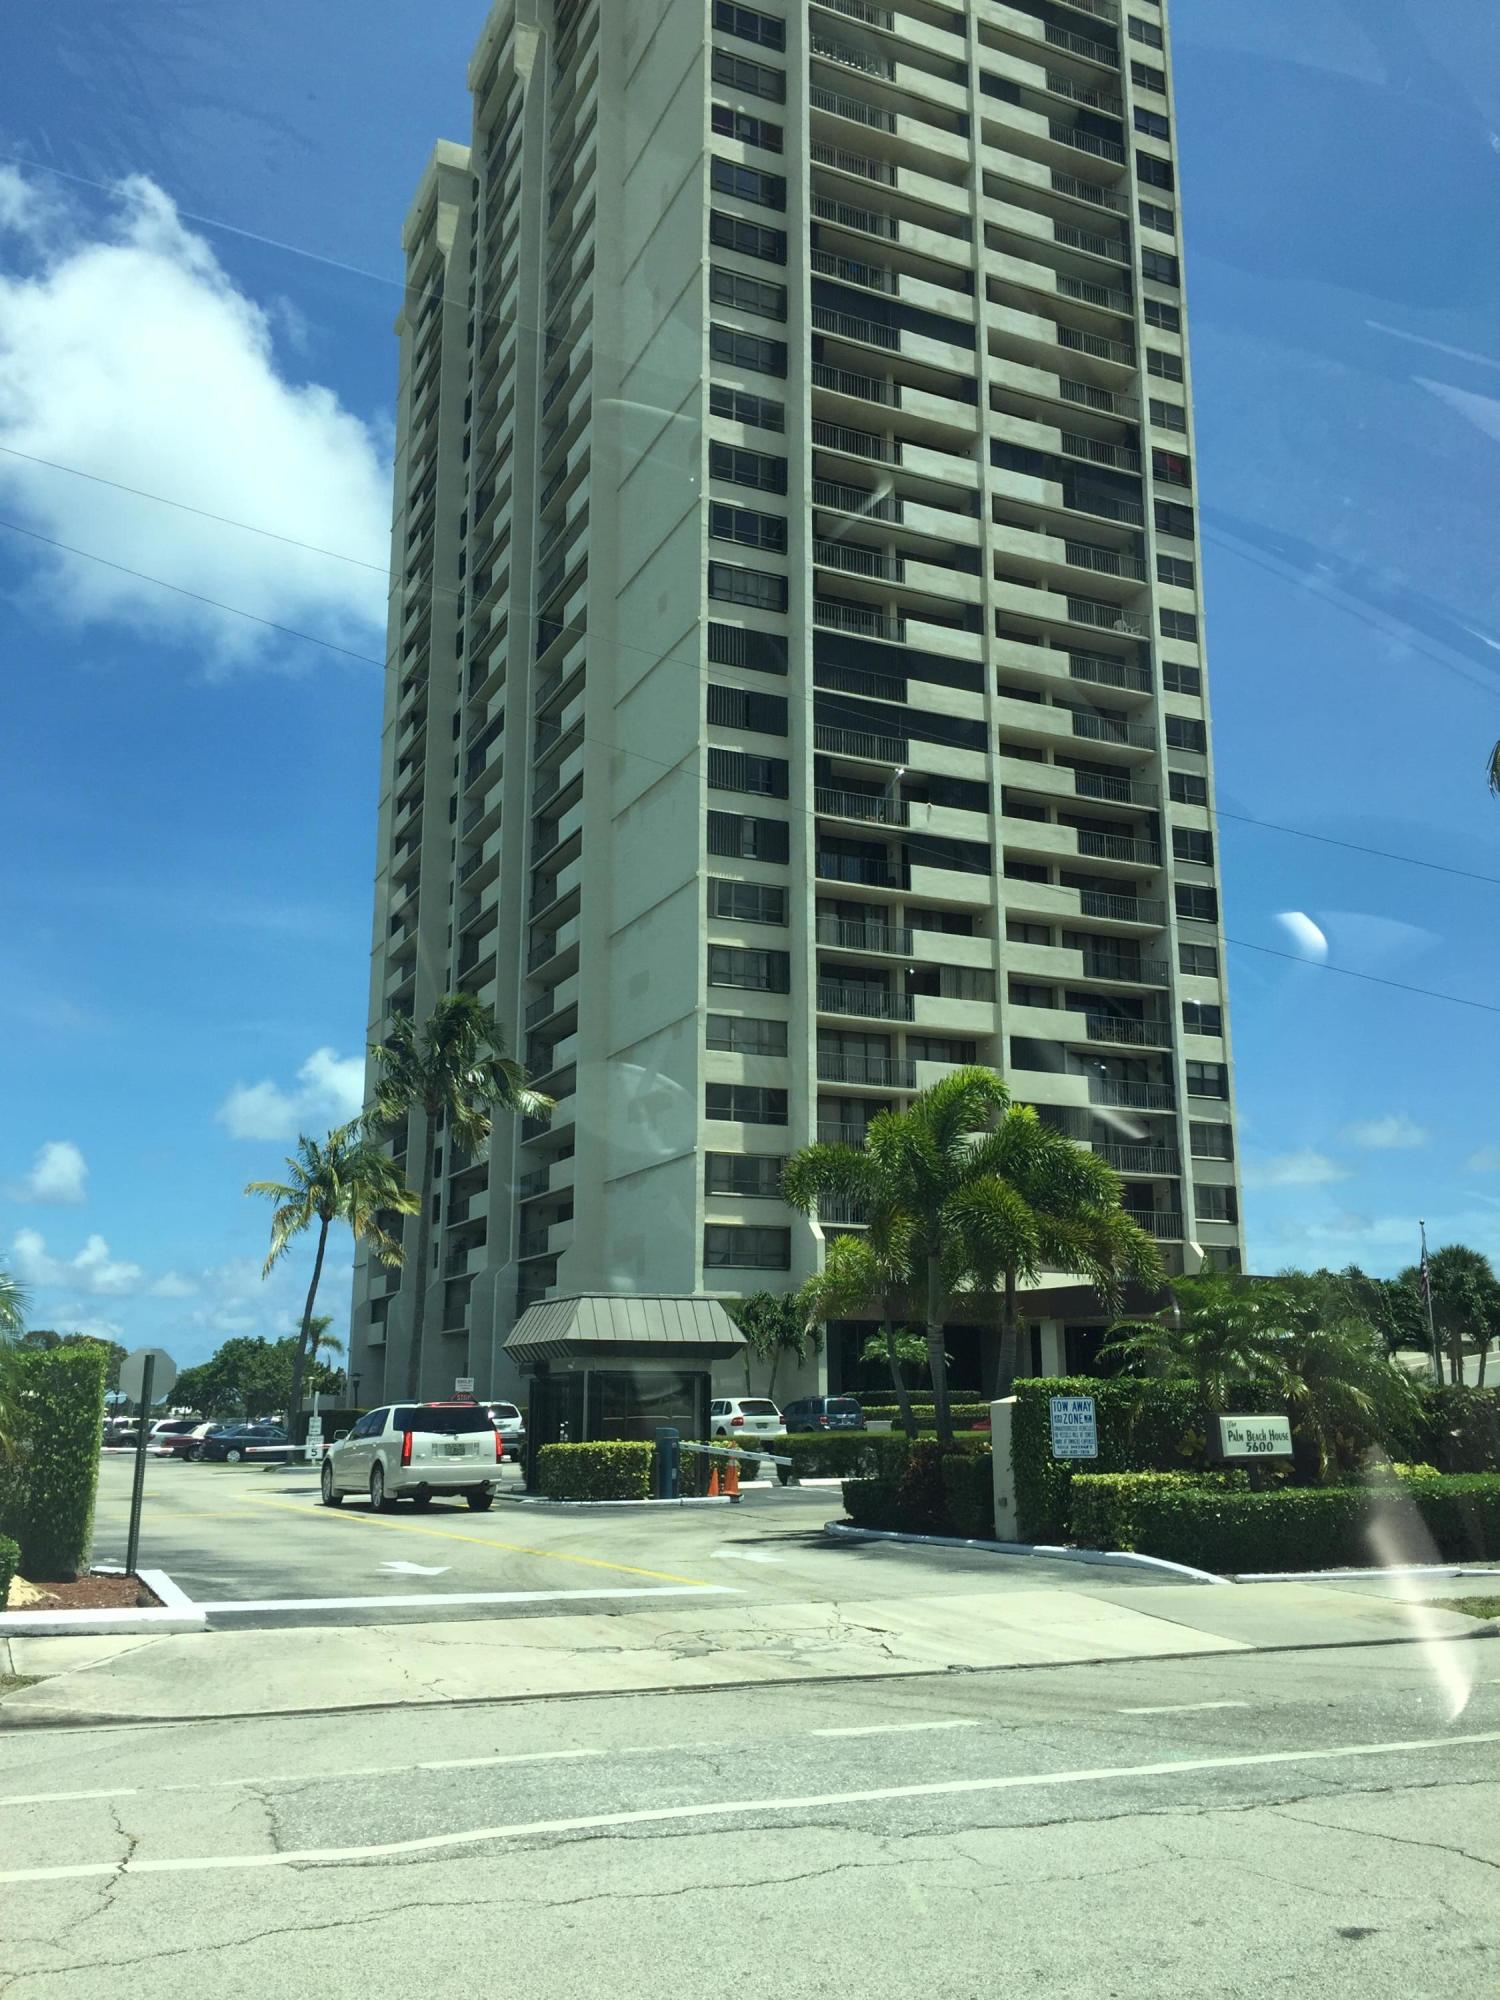 5600 Flagler Drive 1402, West Palm Beach, Florida 33407, 2 Bedrooms Bedrooms, ,2 BathroomsBathrooms,A,Condominium,Flagler,RX-10423407